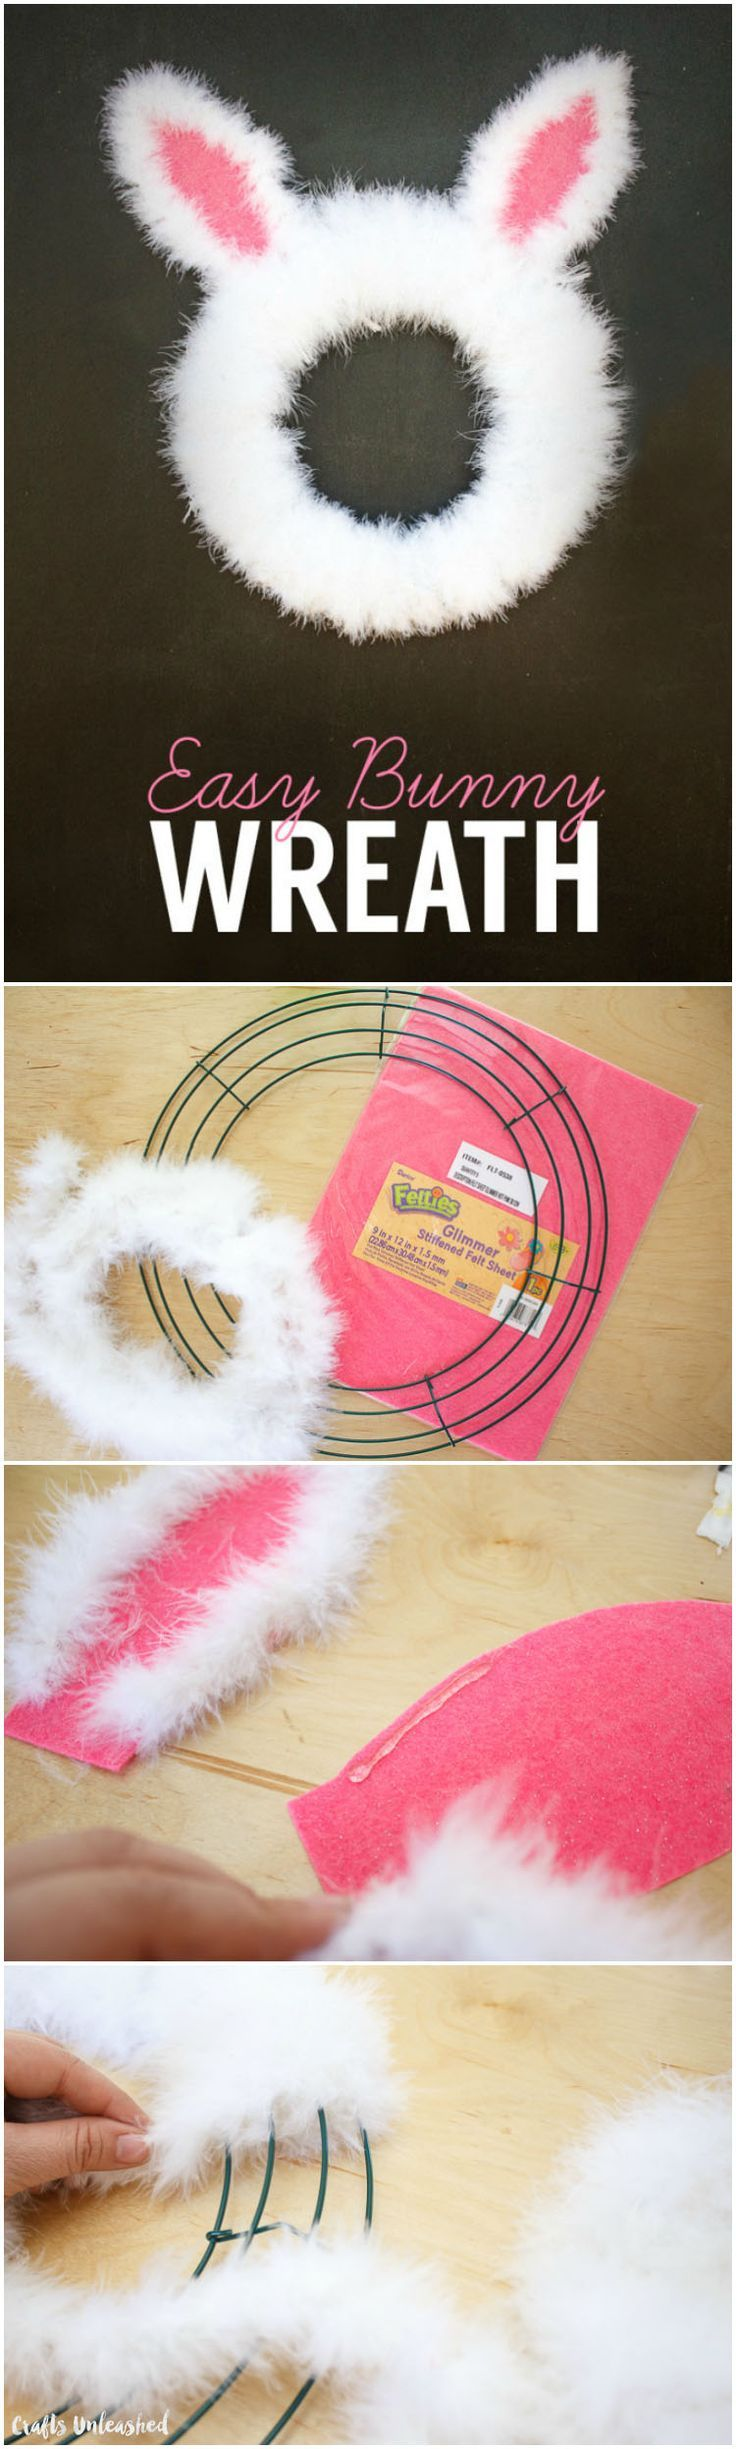 Fast and easy diy easter decorations - Easter Wreath Diy Spring Bunny Tutorial Crafts Unleashed